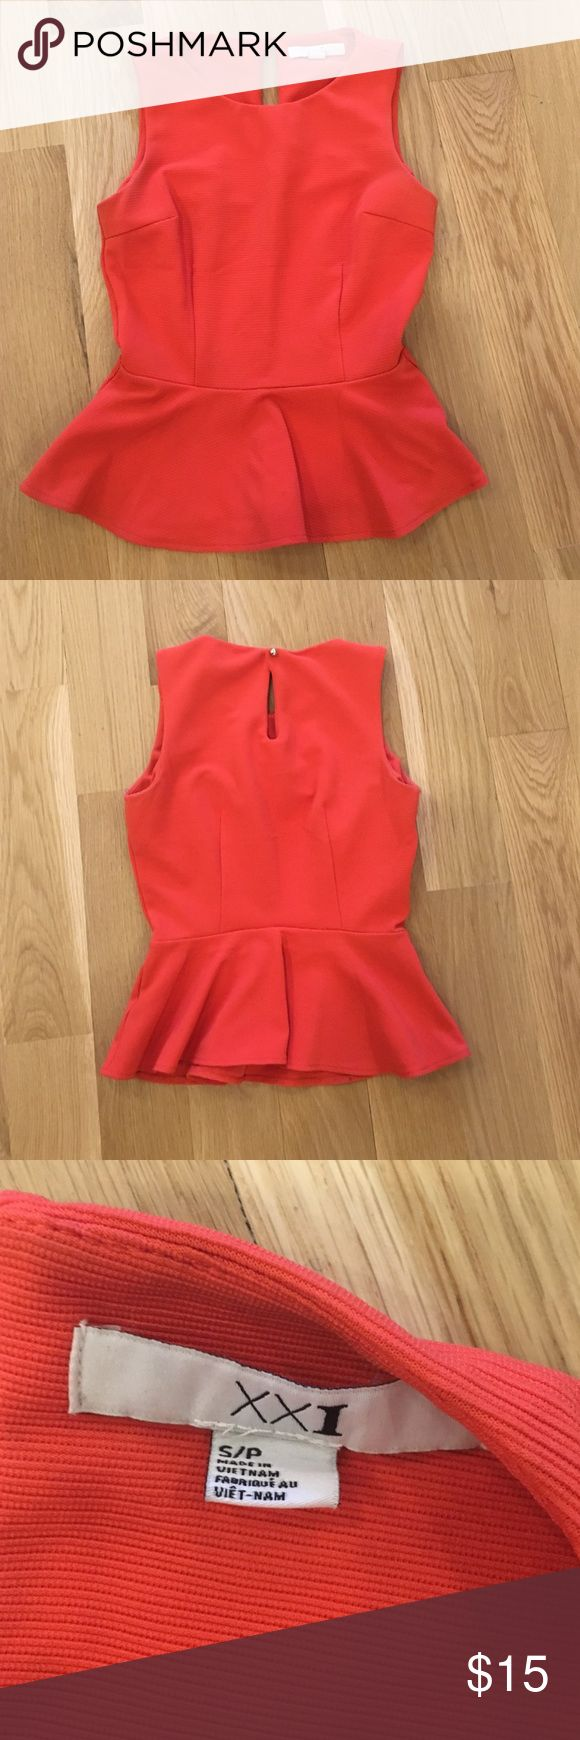 Forever 21 peplum top Gently worn, great condition red peplum top. Forever 21 Tops Camisoles